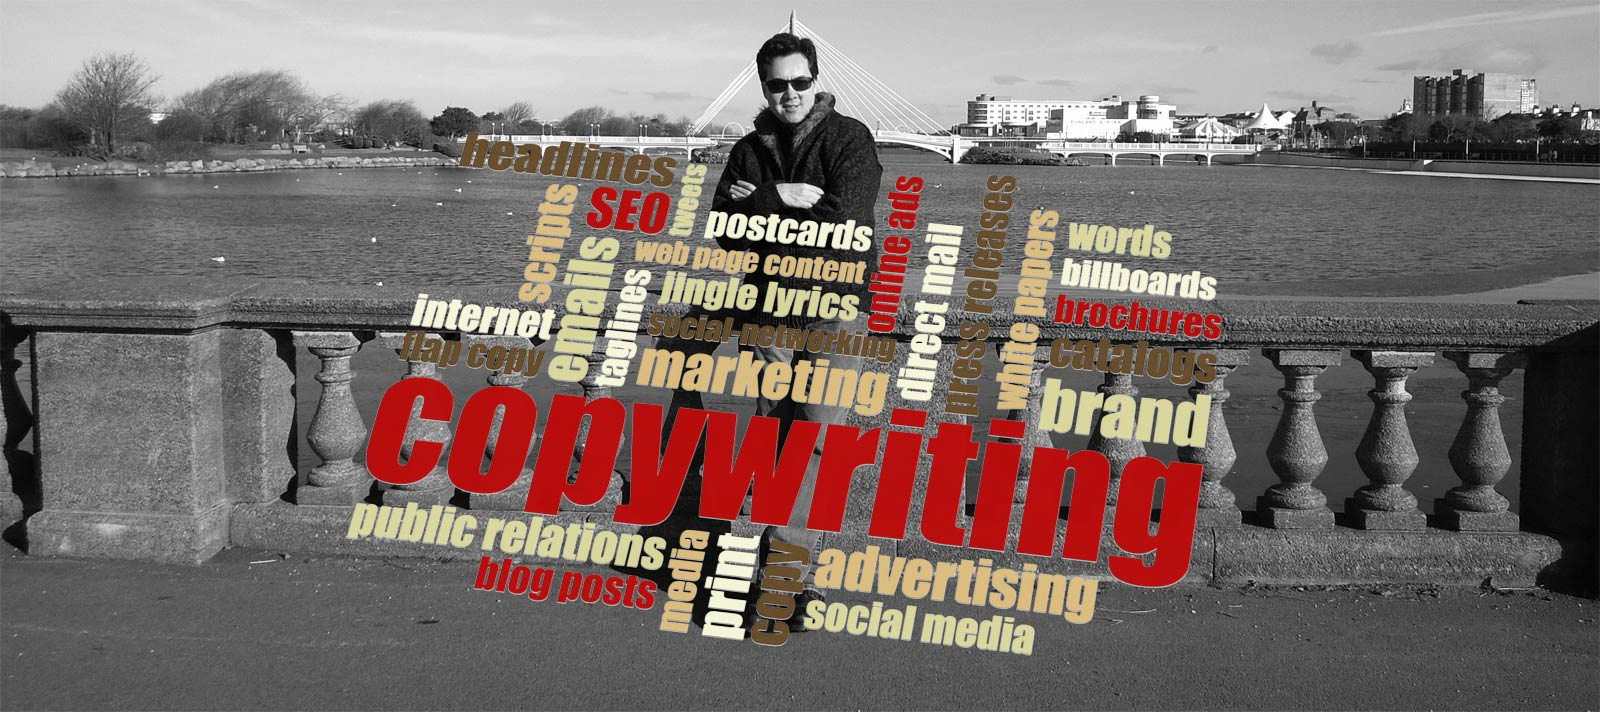 Services offered by The Copywriters - The Professional Copywriting Service